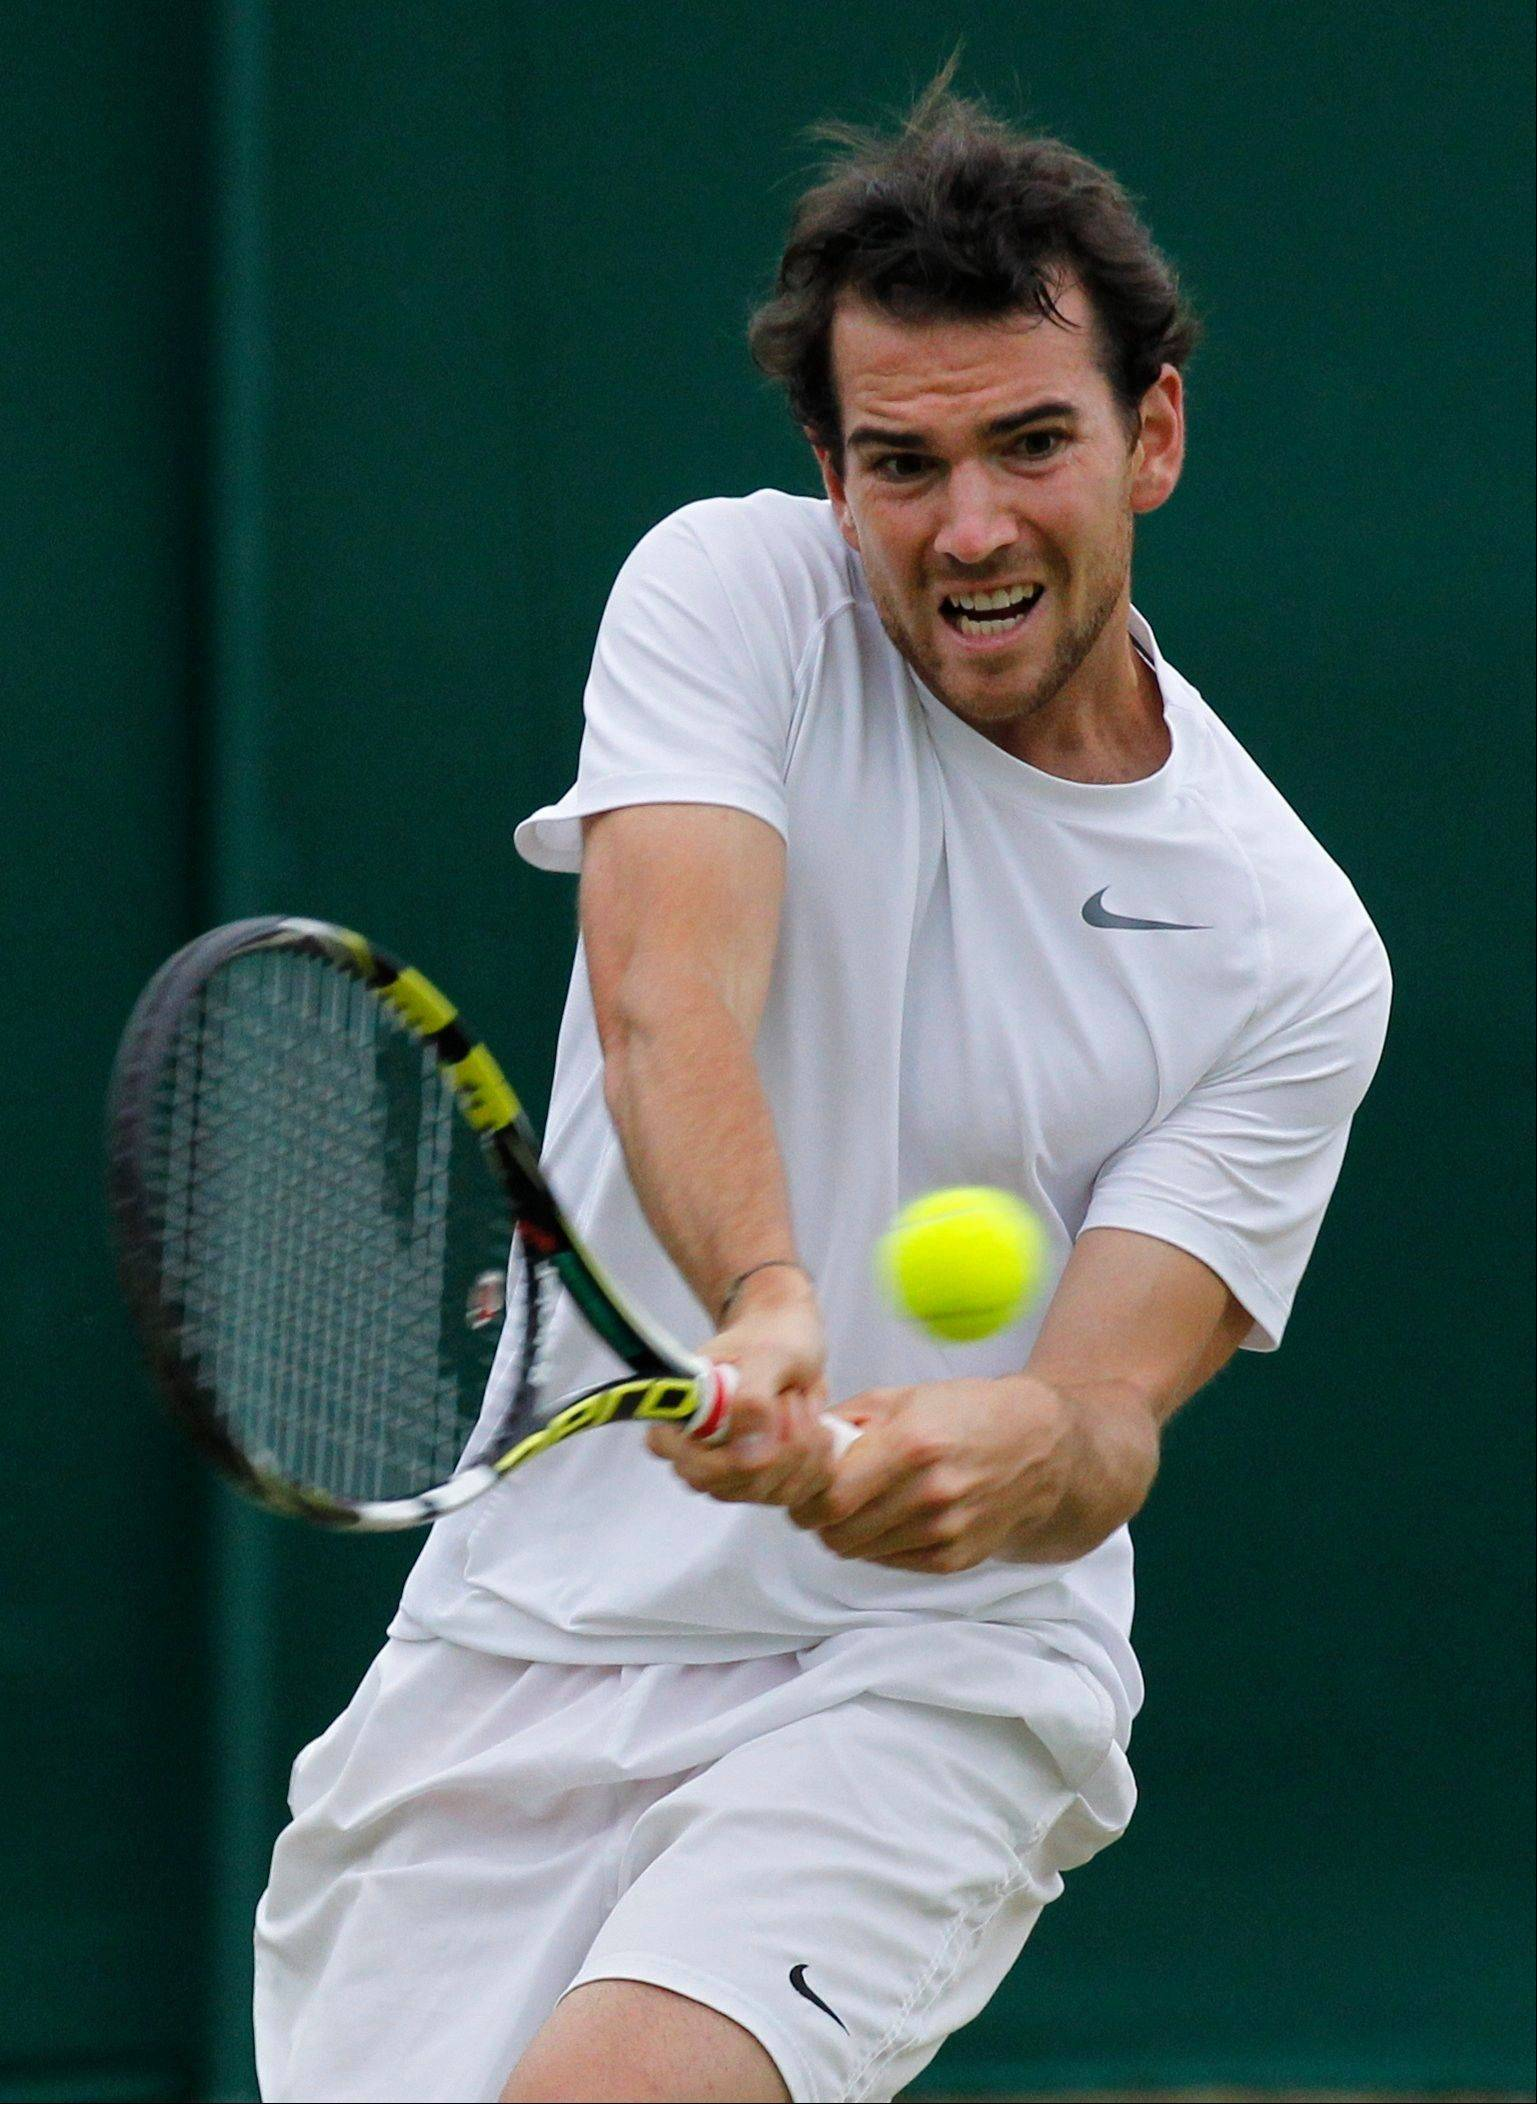 Adrian Mannarino of France plays a return to Dustin Brown of Germany during their men's singles match Friday at in Wimbledon.